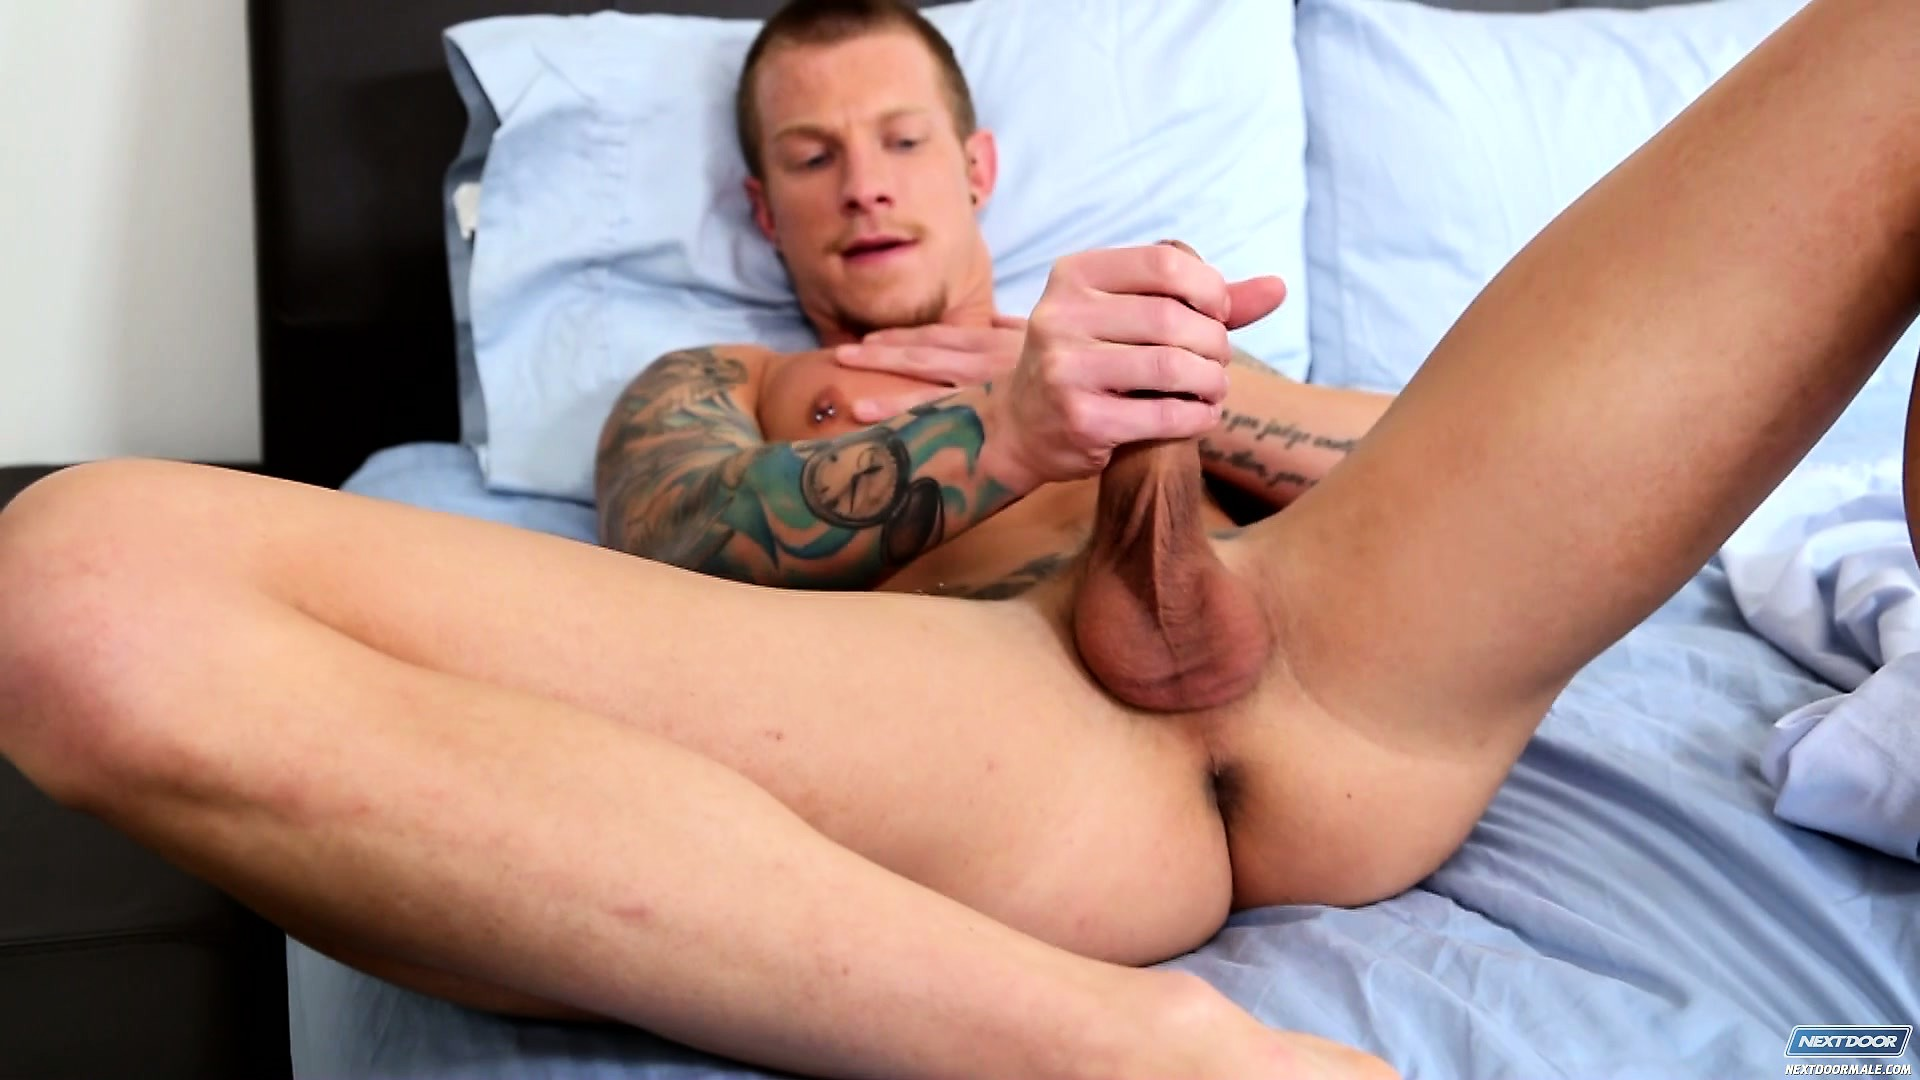 Porno Video of Jaxon Colt Spreads His Body Across The Bed Pleasing His Big Shaft